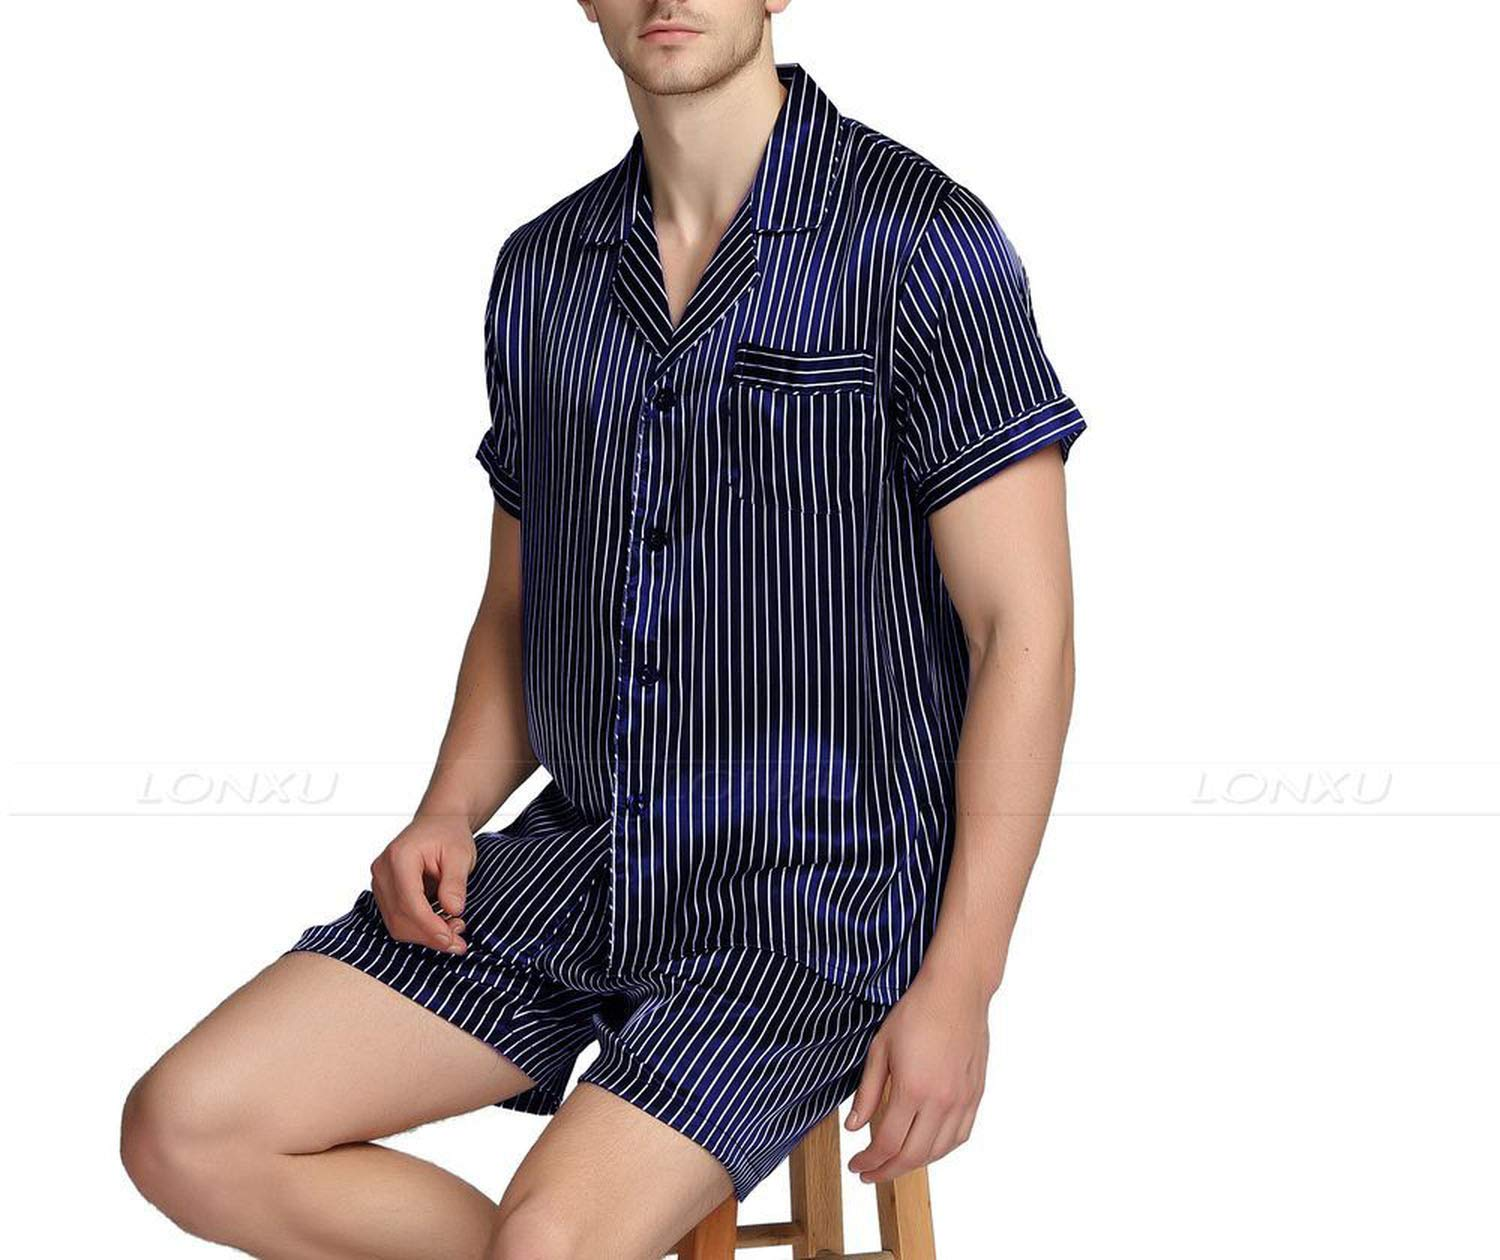 Mens Silk Satin Short Pajamas Pajama Pyjamas Set Sleepwear Set Loungewear,Navy Blue Strip,XL